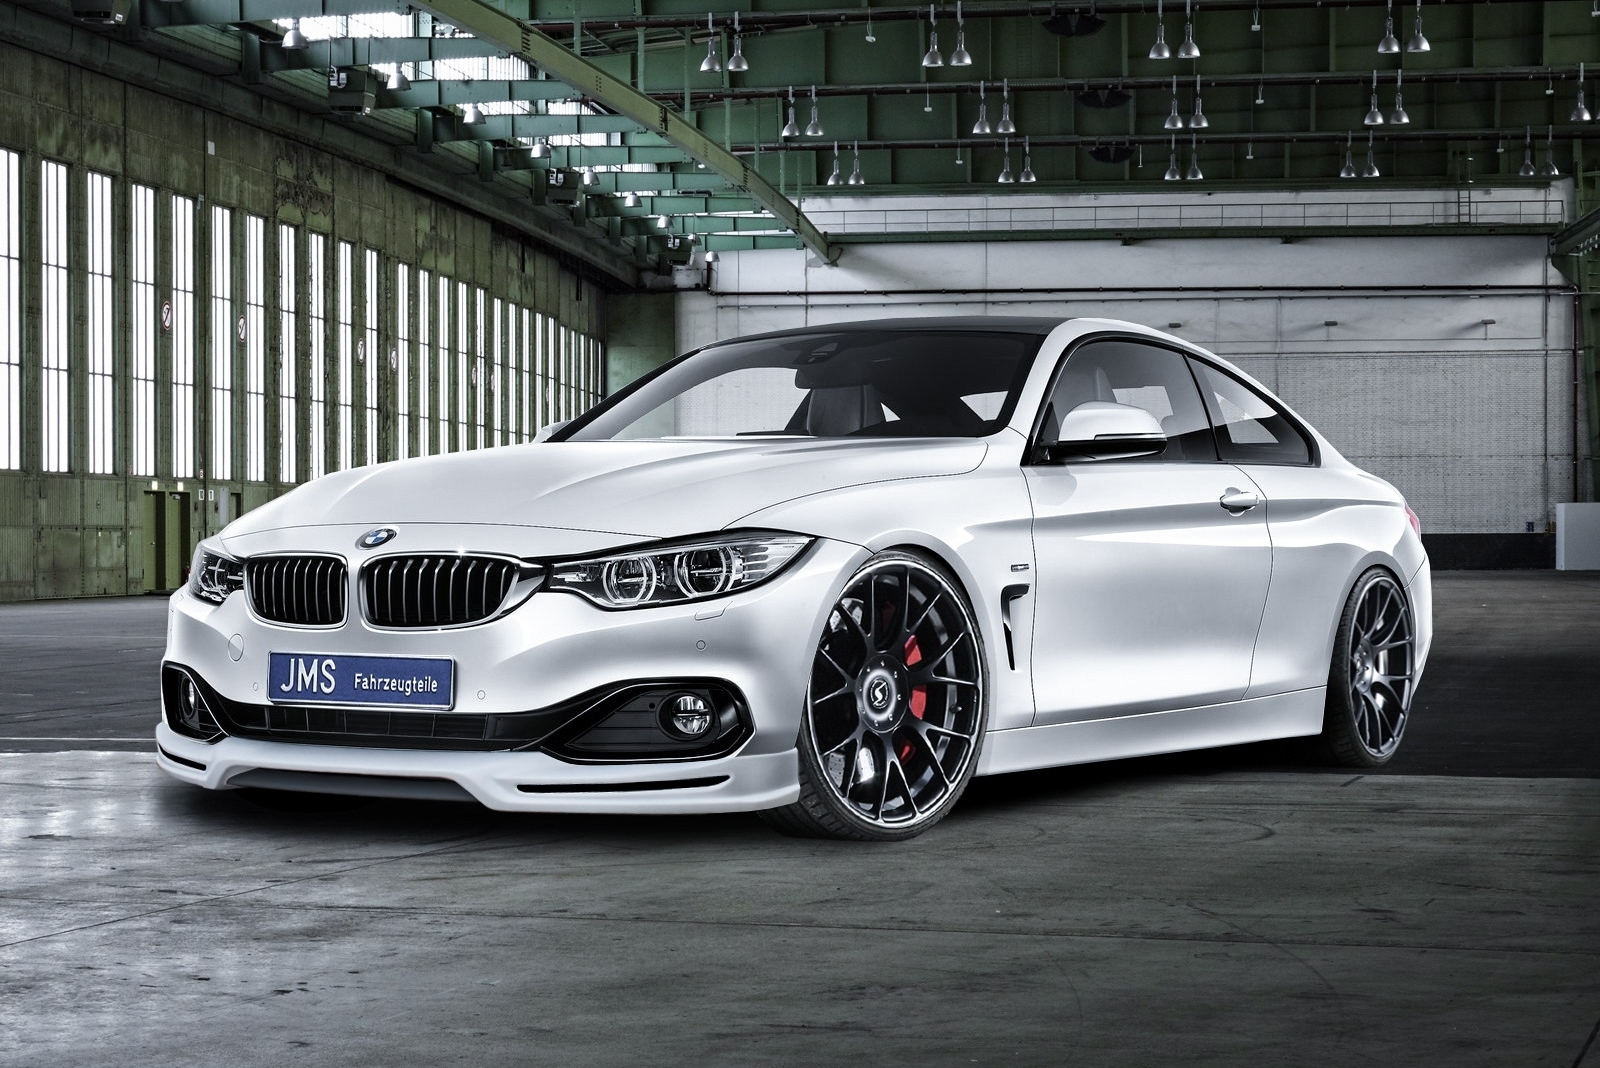 2014 BMW 4 Series Coupe By JMS Review - Top Speed